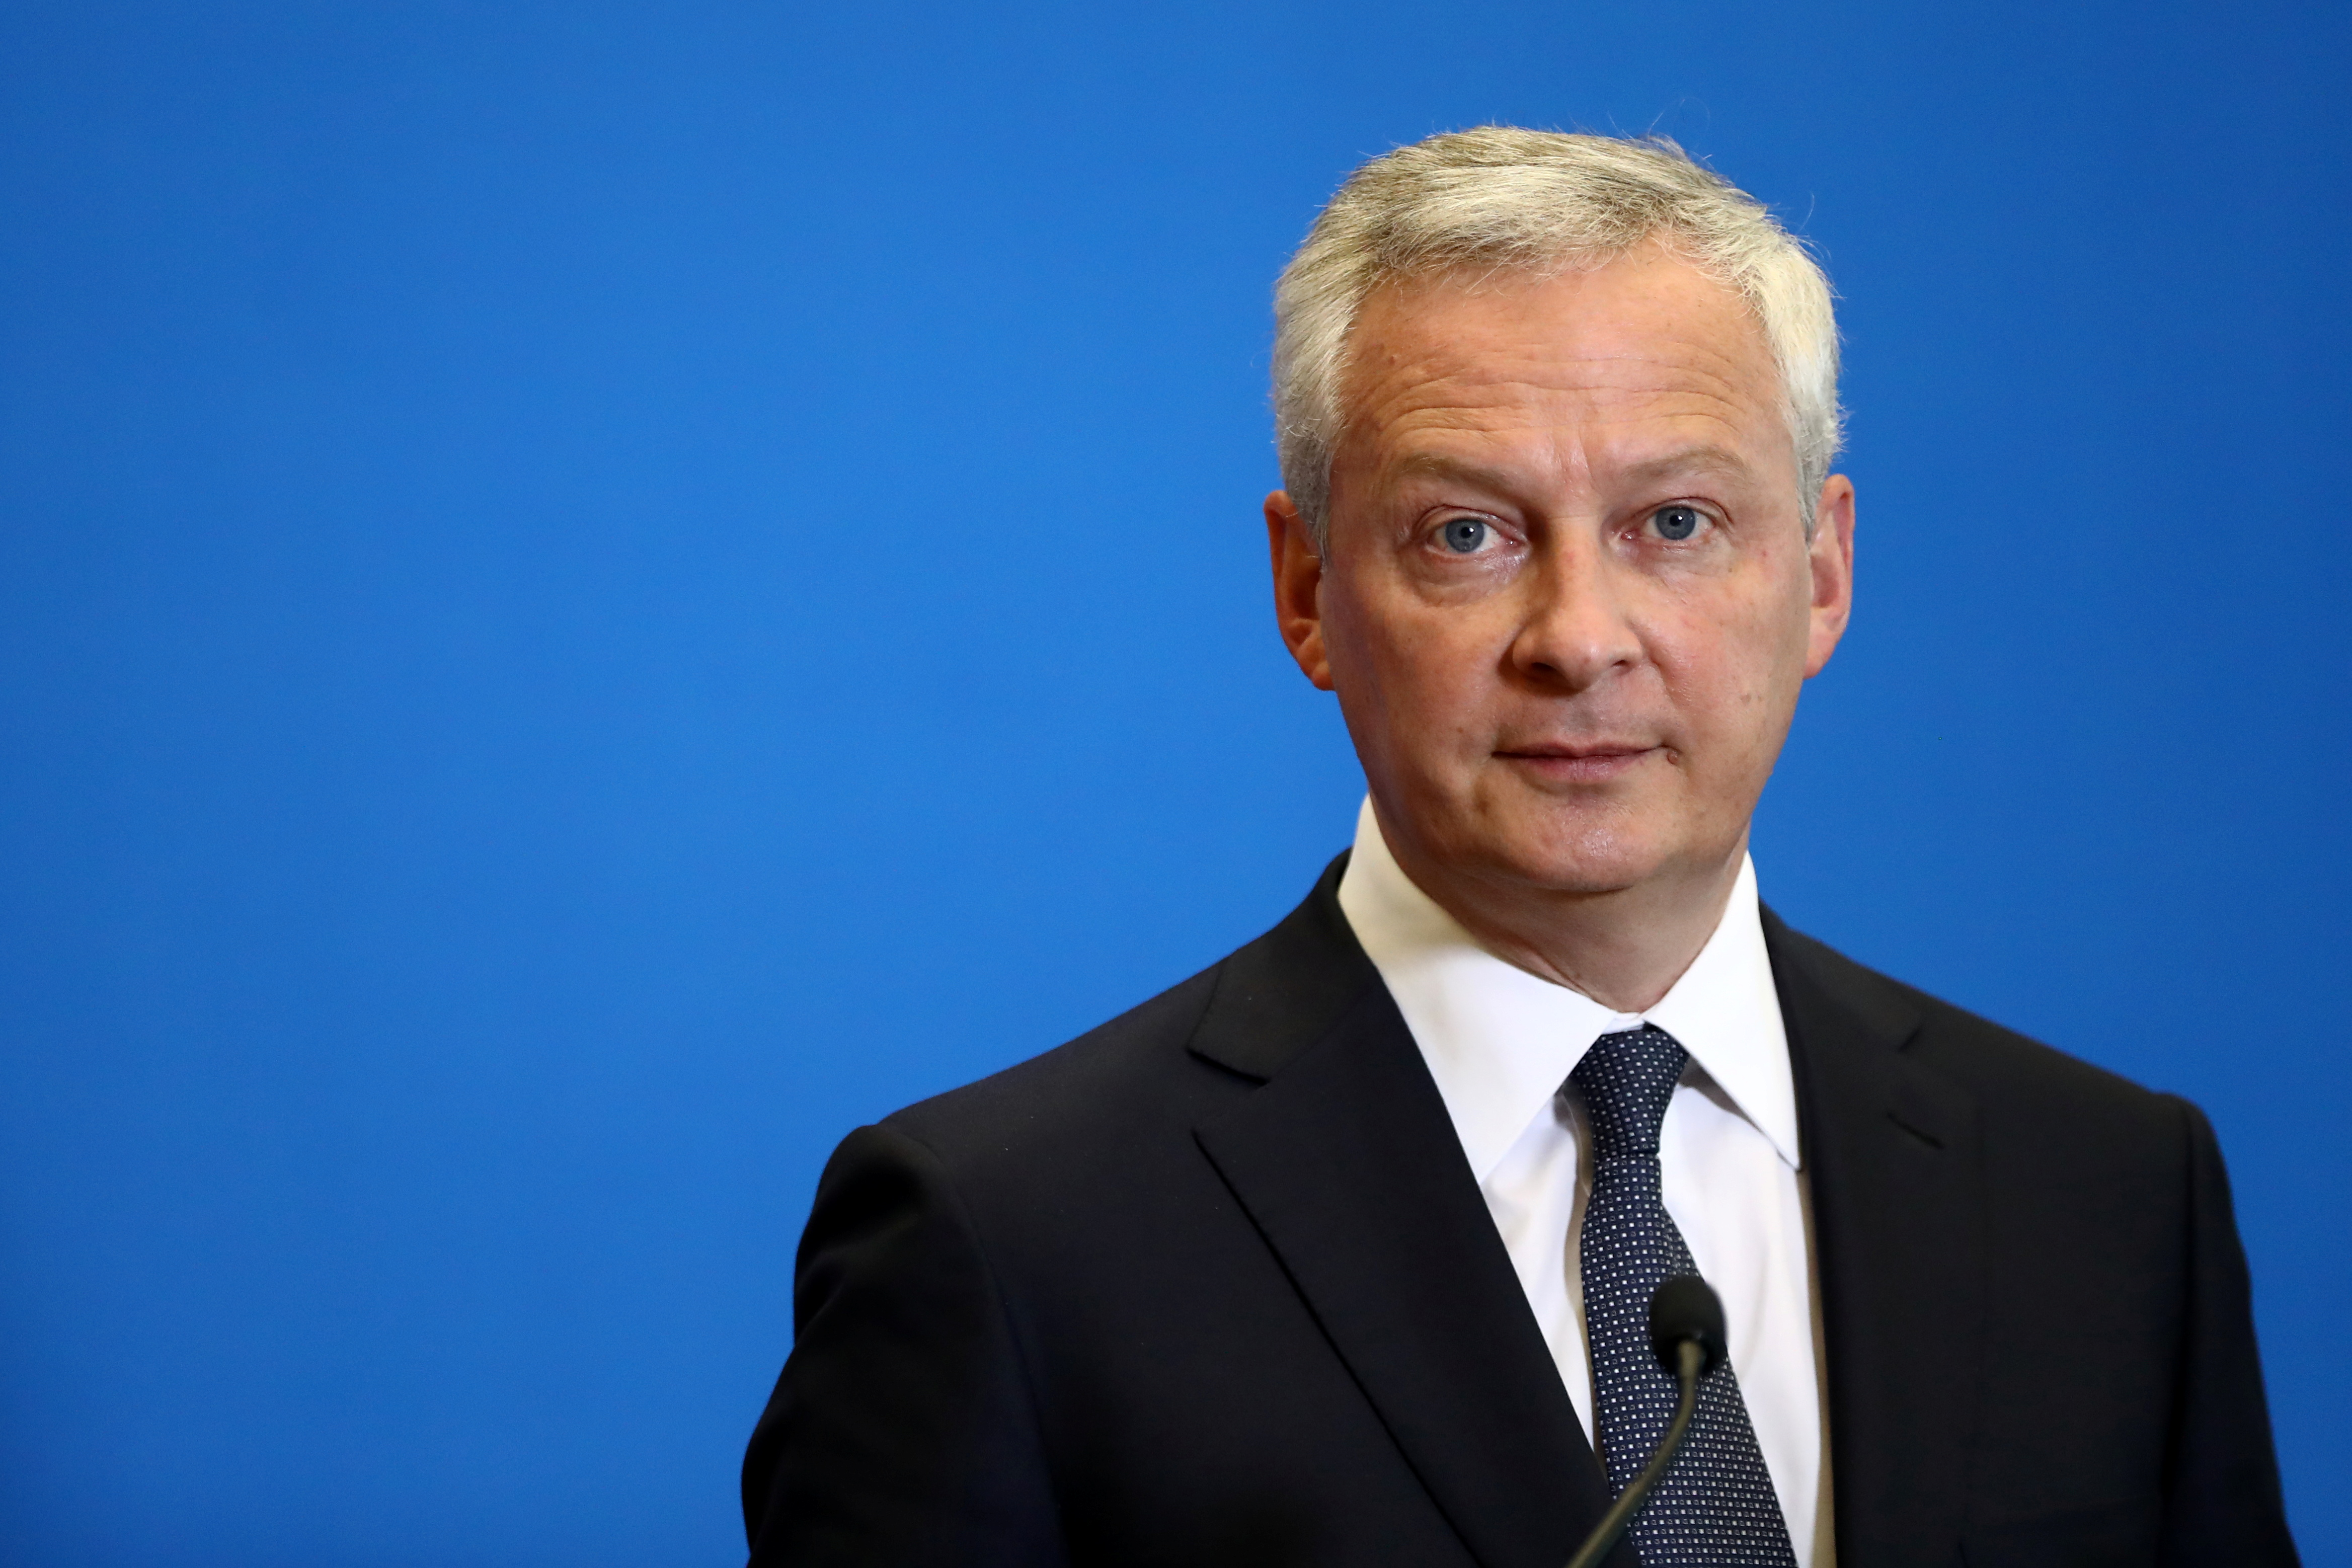 French Economy and Finance Minister Bruno Le Maire attends a news conference after a meeting with business federations about when crisis support measures should be wound down, at the Bercy Finance Ministry in Paris, France, August 30, 2021. REUTERS/Sarah Meyssonnier/Files